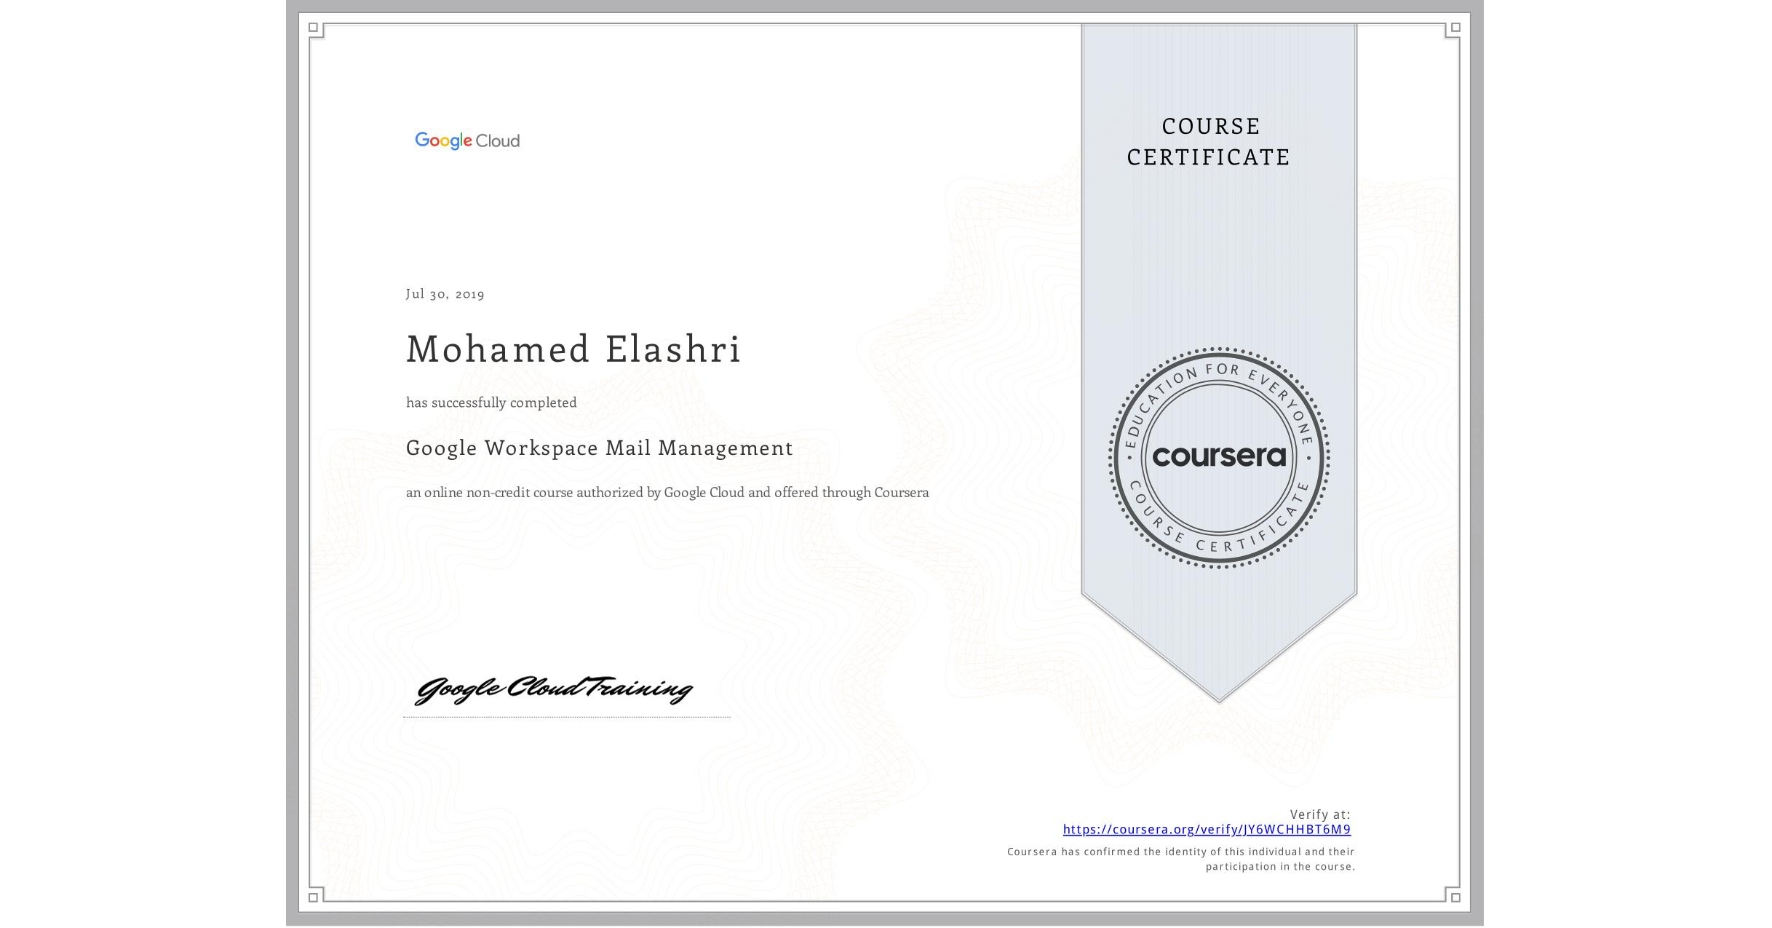 View certificate for Mohamed Elashri, Google Workspace Mail Management, an online non-credit course authorized by Google Cloud and offered through Coursera